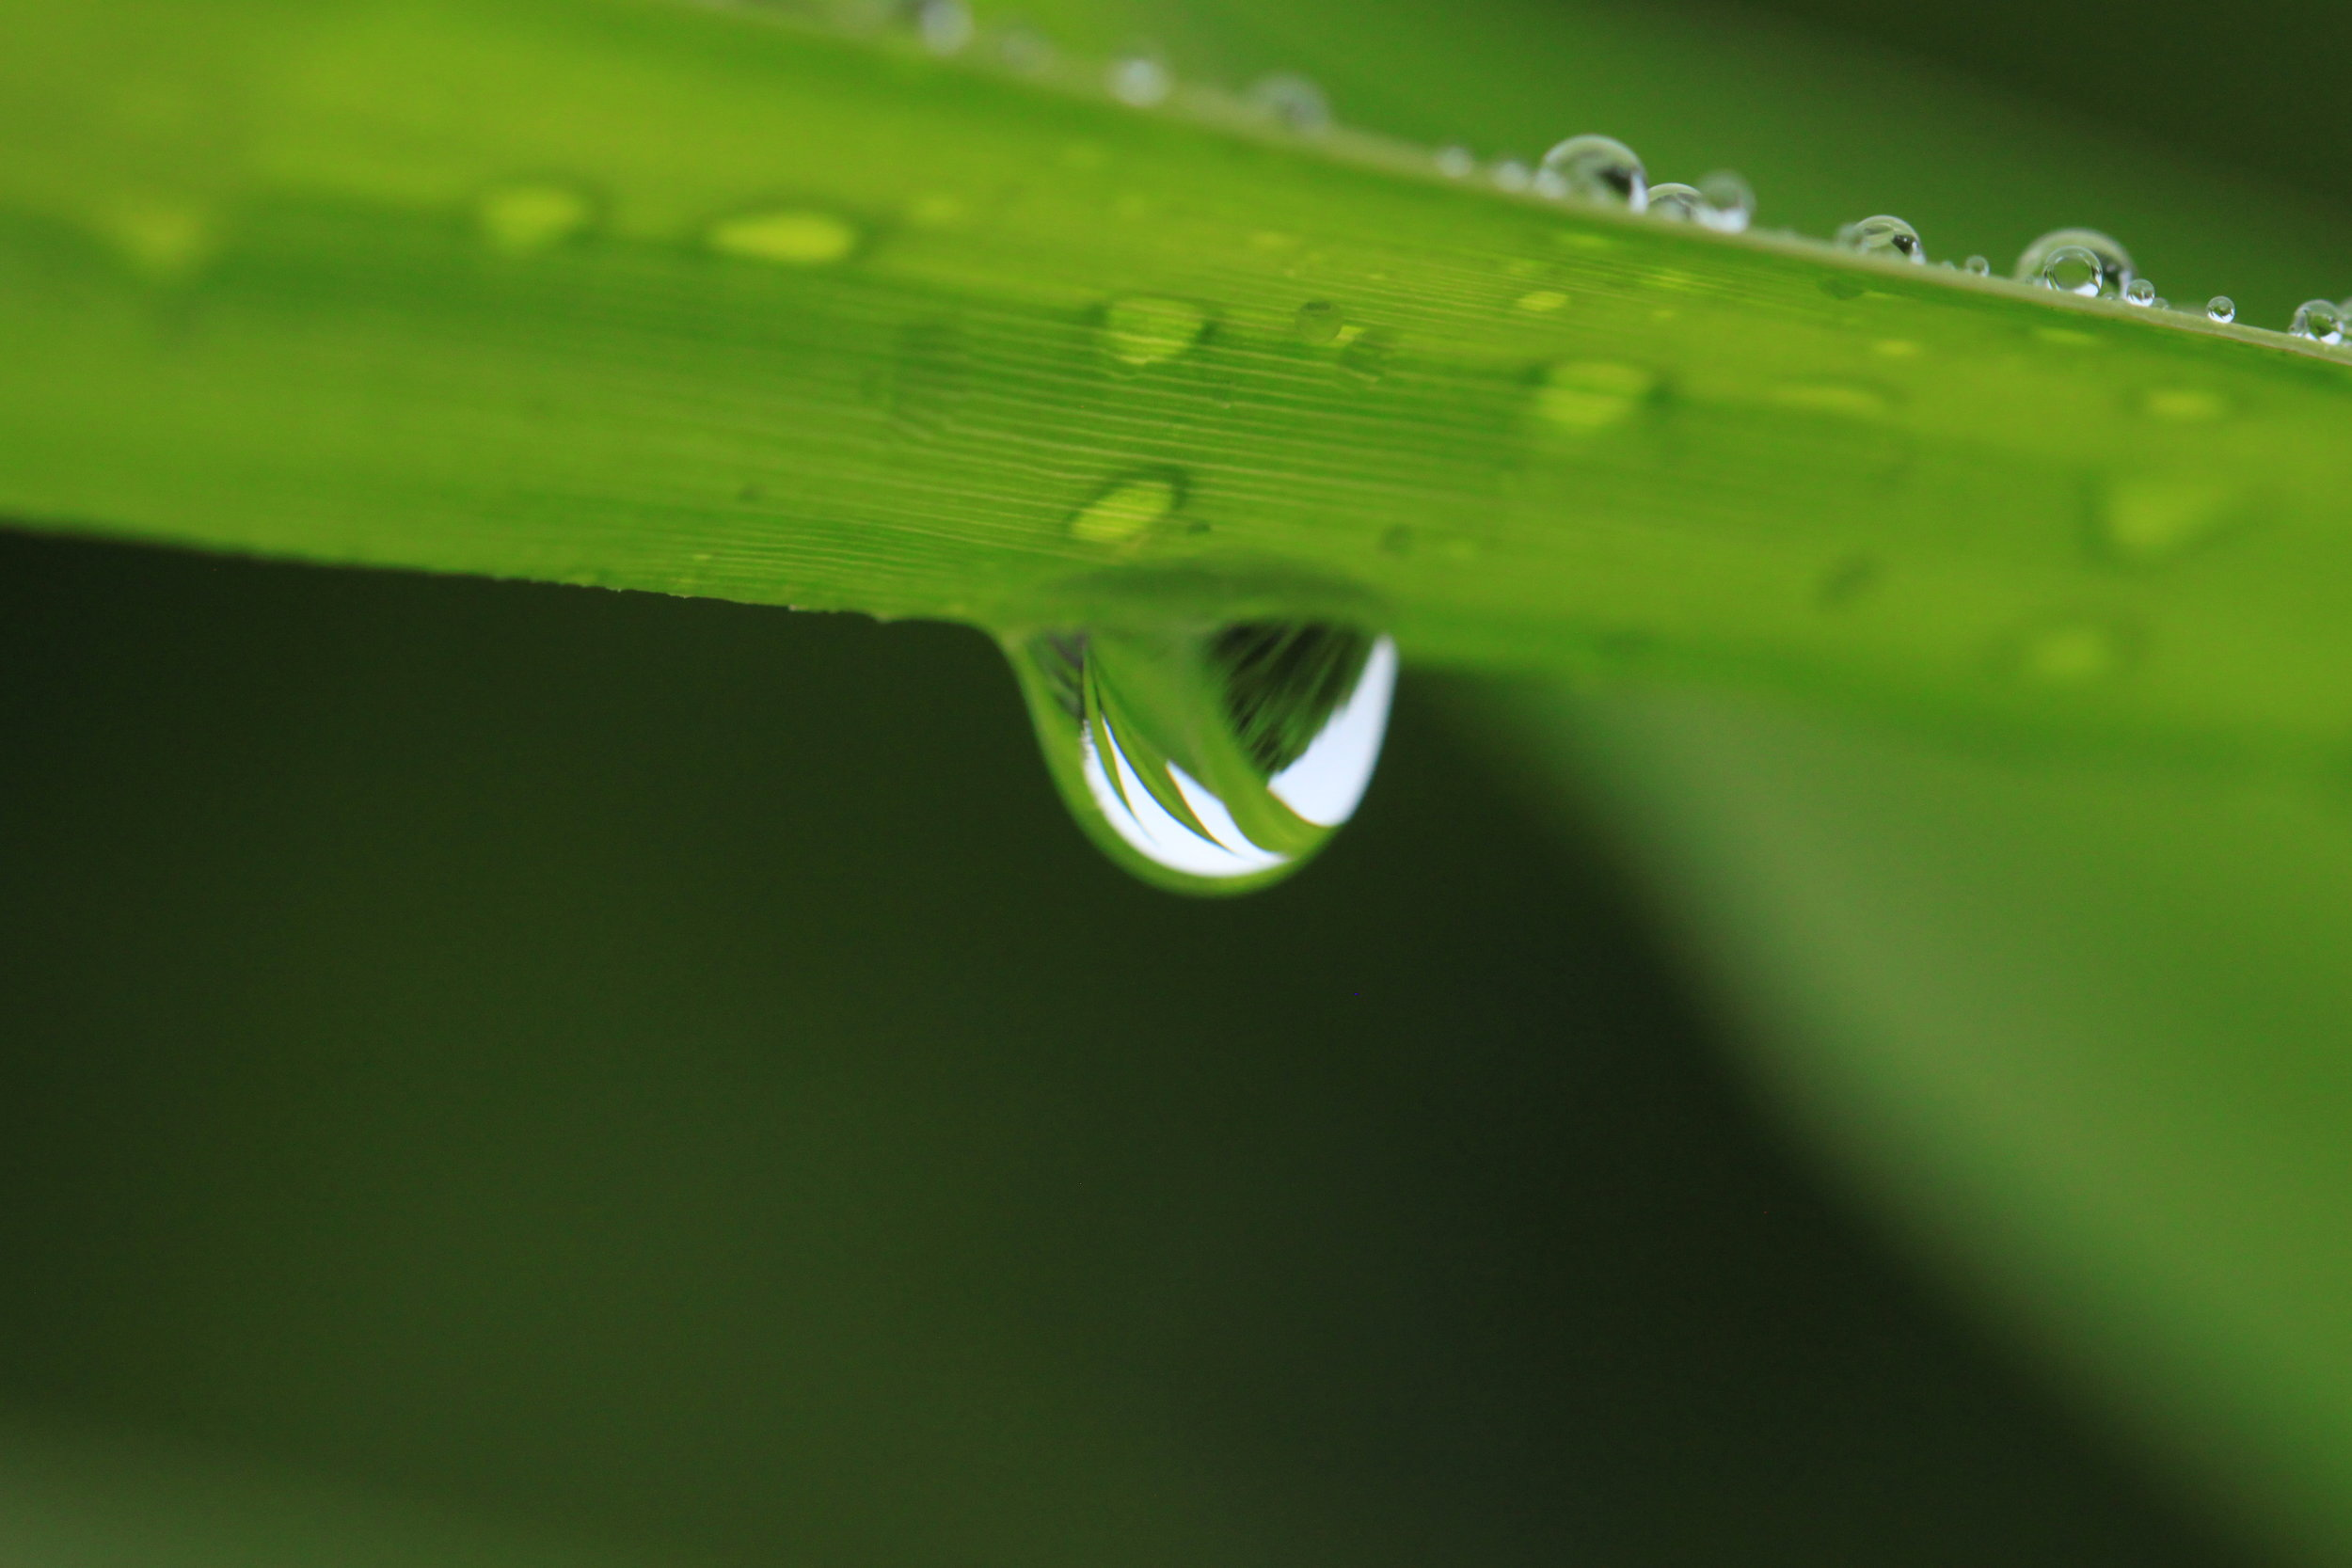 dew-drop-on-grass-costa-rica.jpg